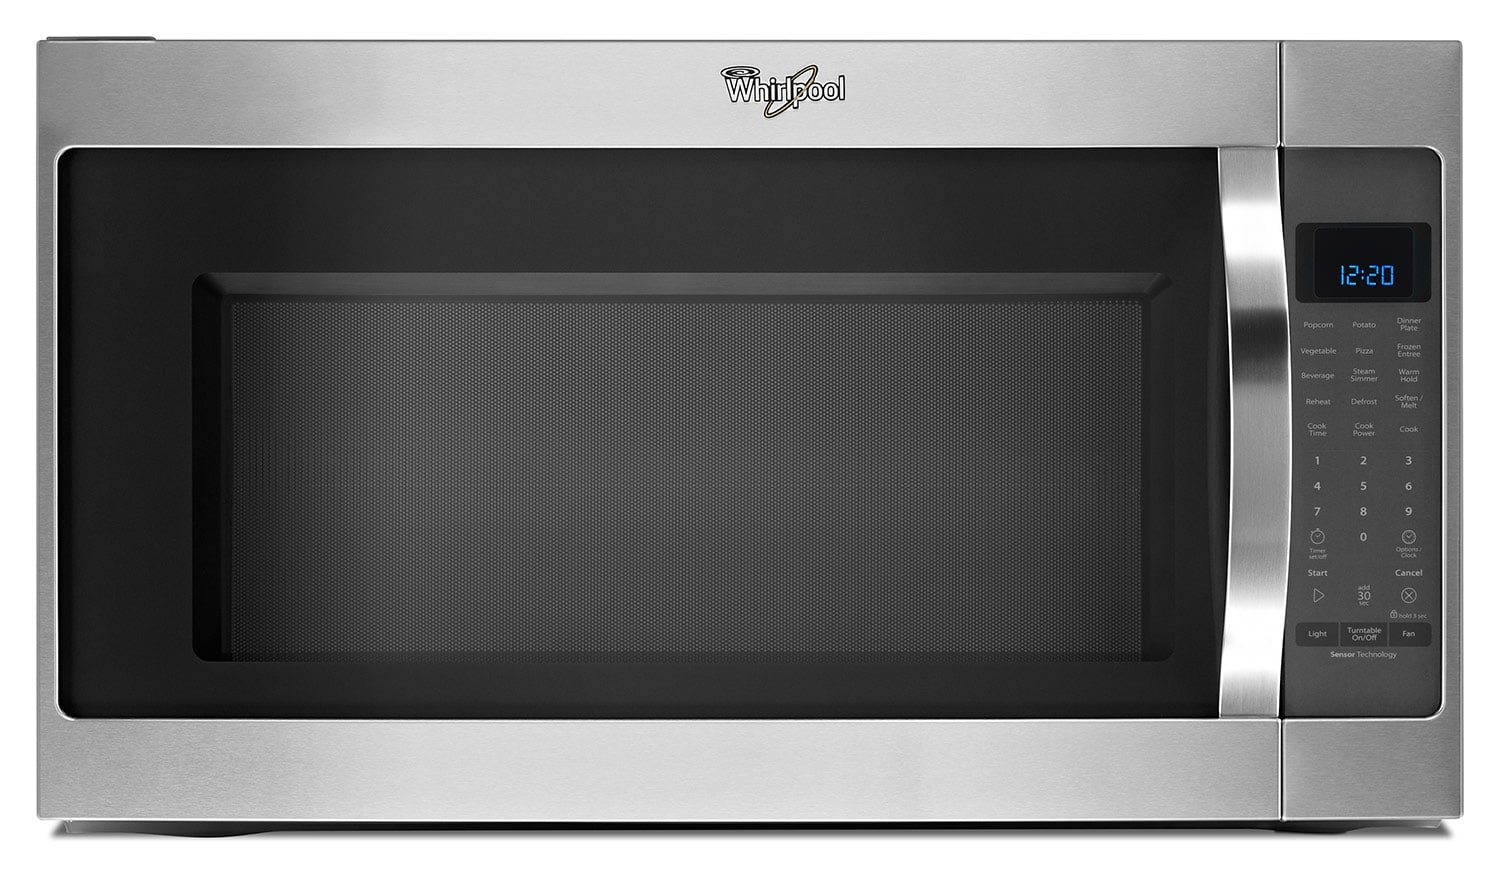 Whirlpool Stainless Steel Over-the-Range Microwave (2 Cu. Ft.) - YWMH53520CS